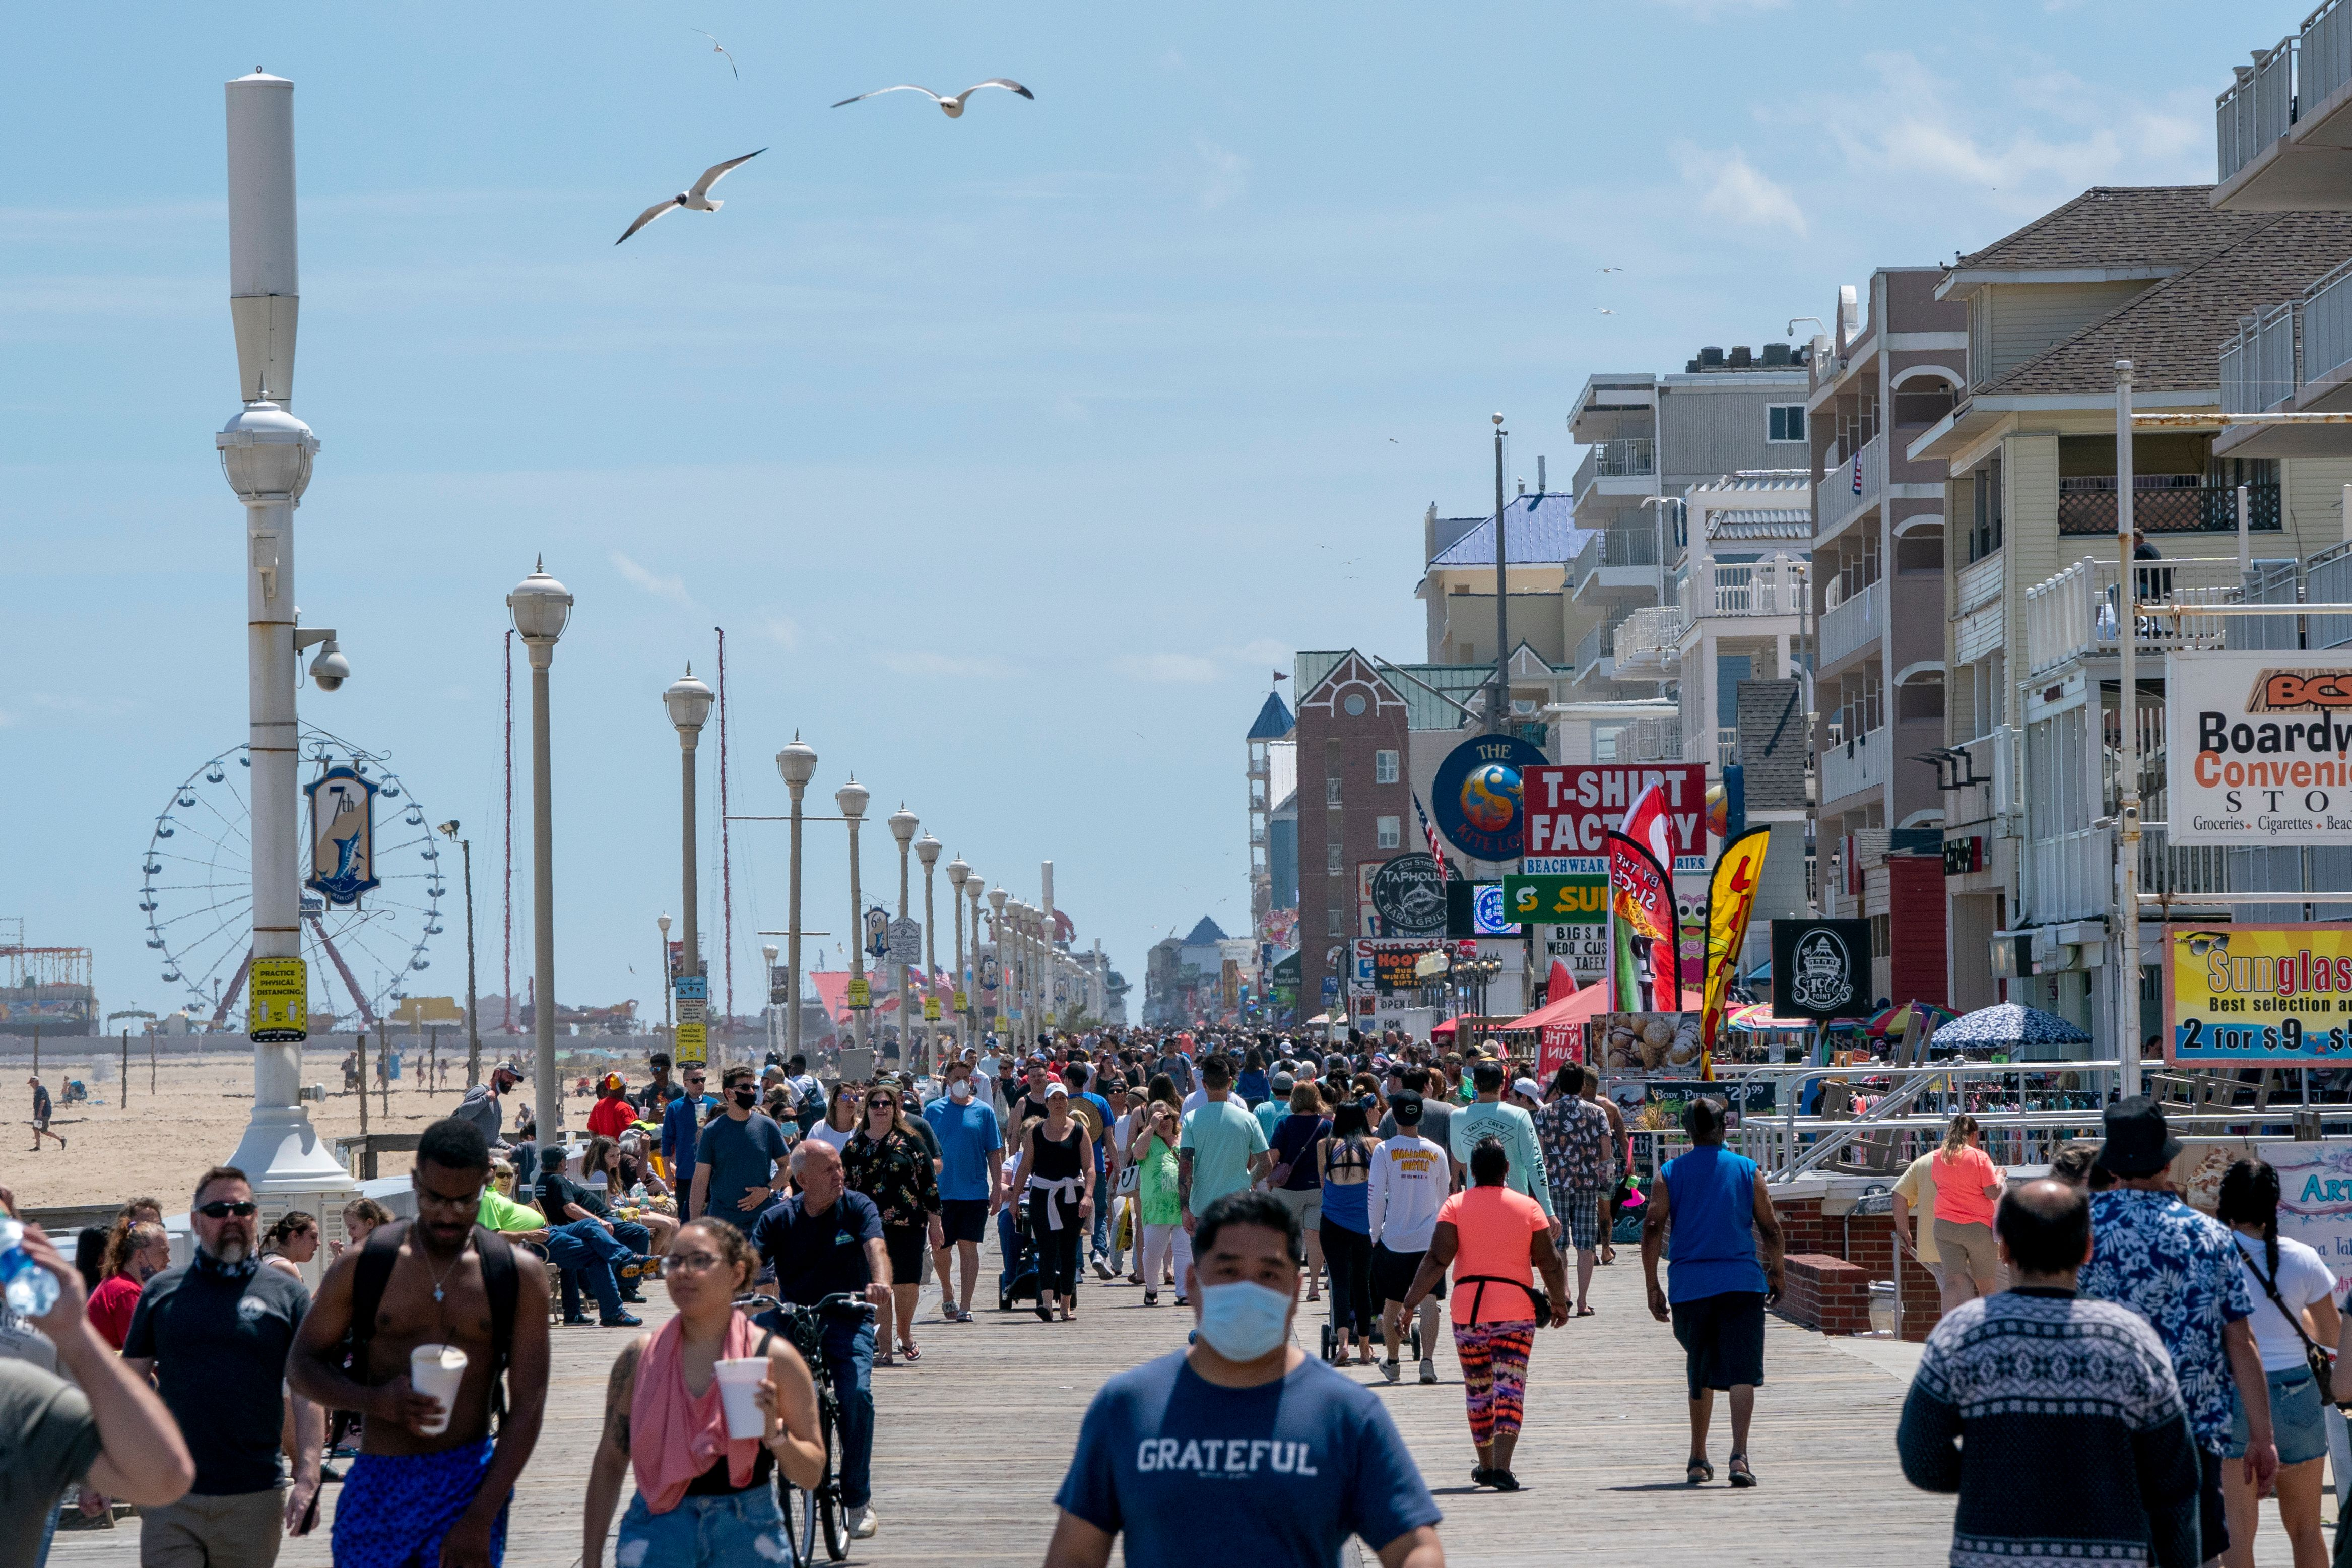 People enjoy the boardwalk during the Memorial Day holiday weekend